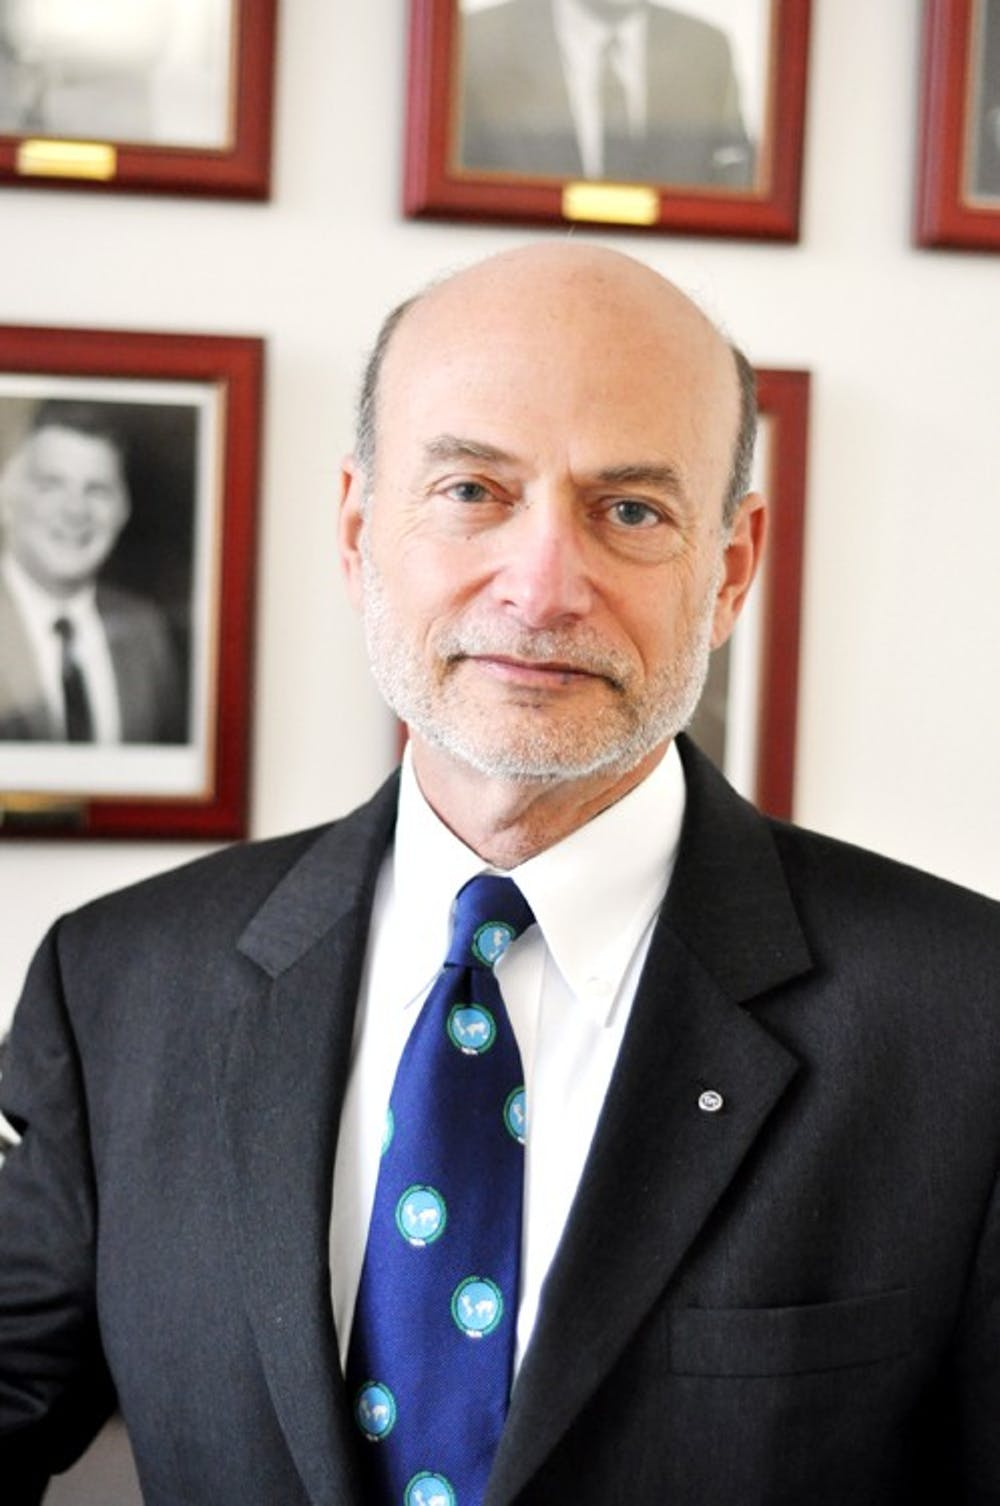 Dean of SIS to step down, will return to teach